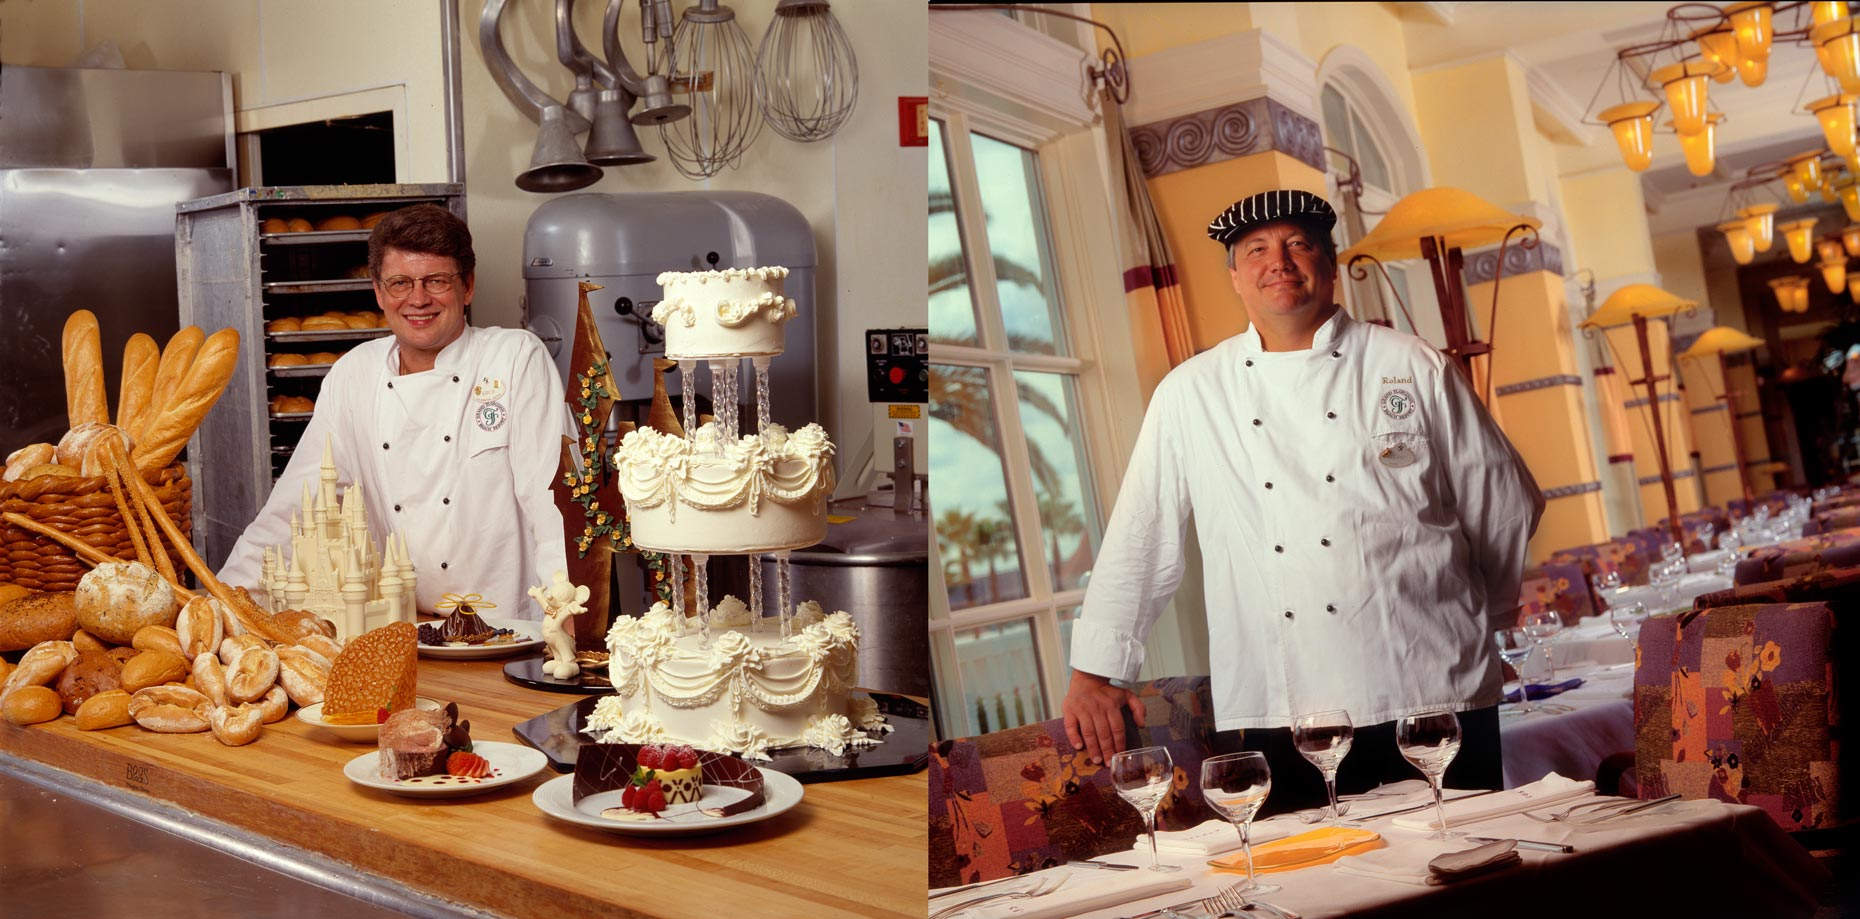 Chef & Restaurant Photography | Disney Chefs